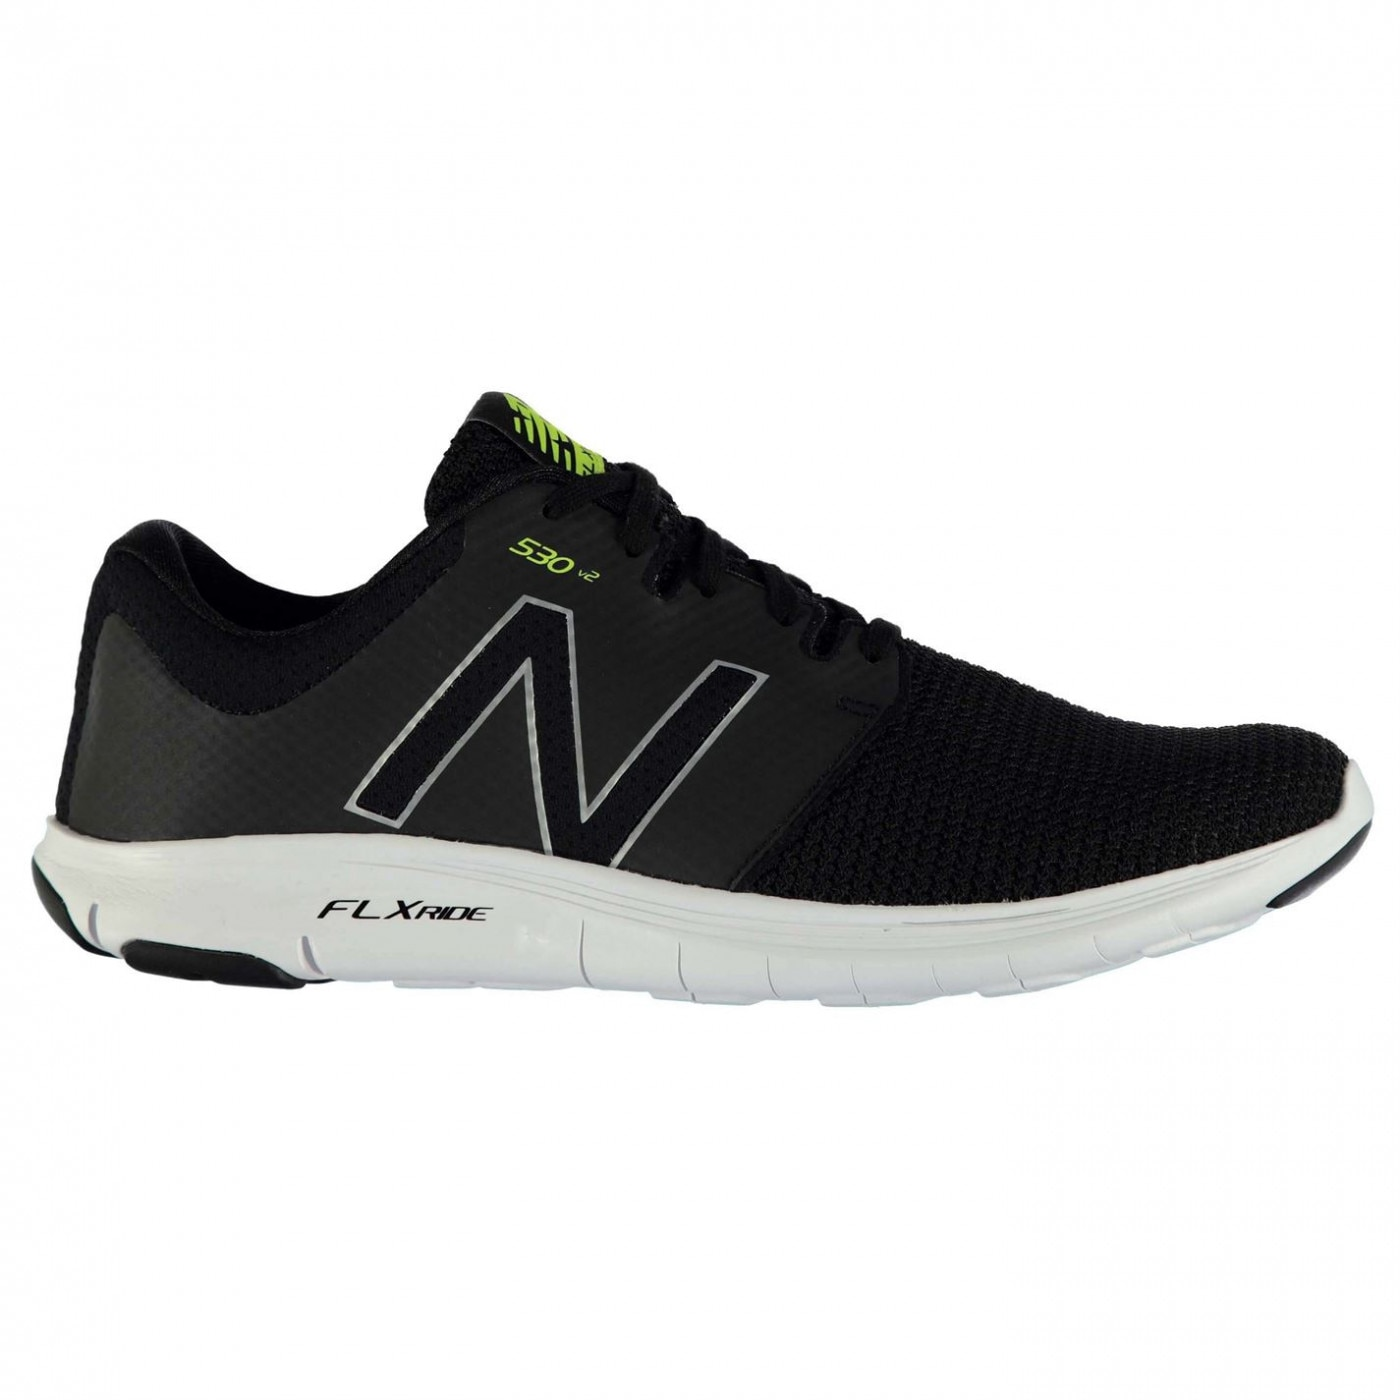 best loved 59120 8289b New Balance FLX Ride 530 v2 Mens Running Shoe - FACTCOOL